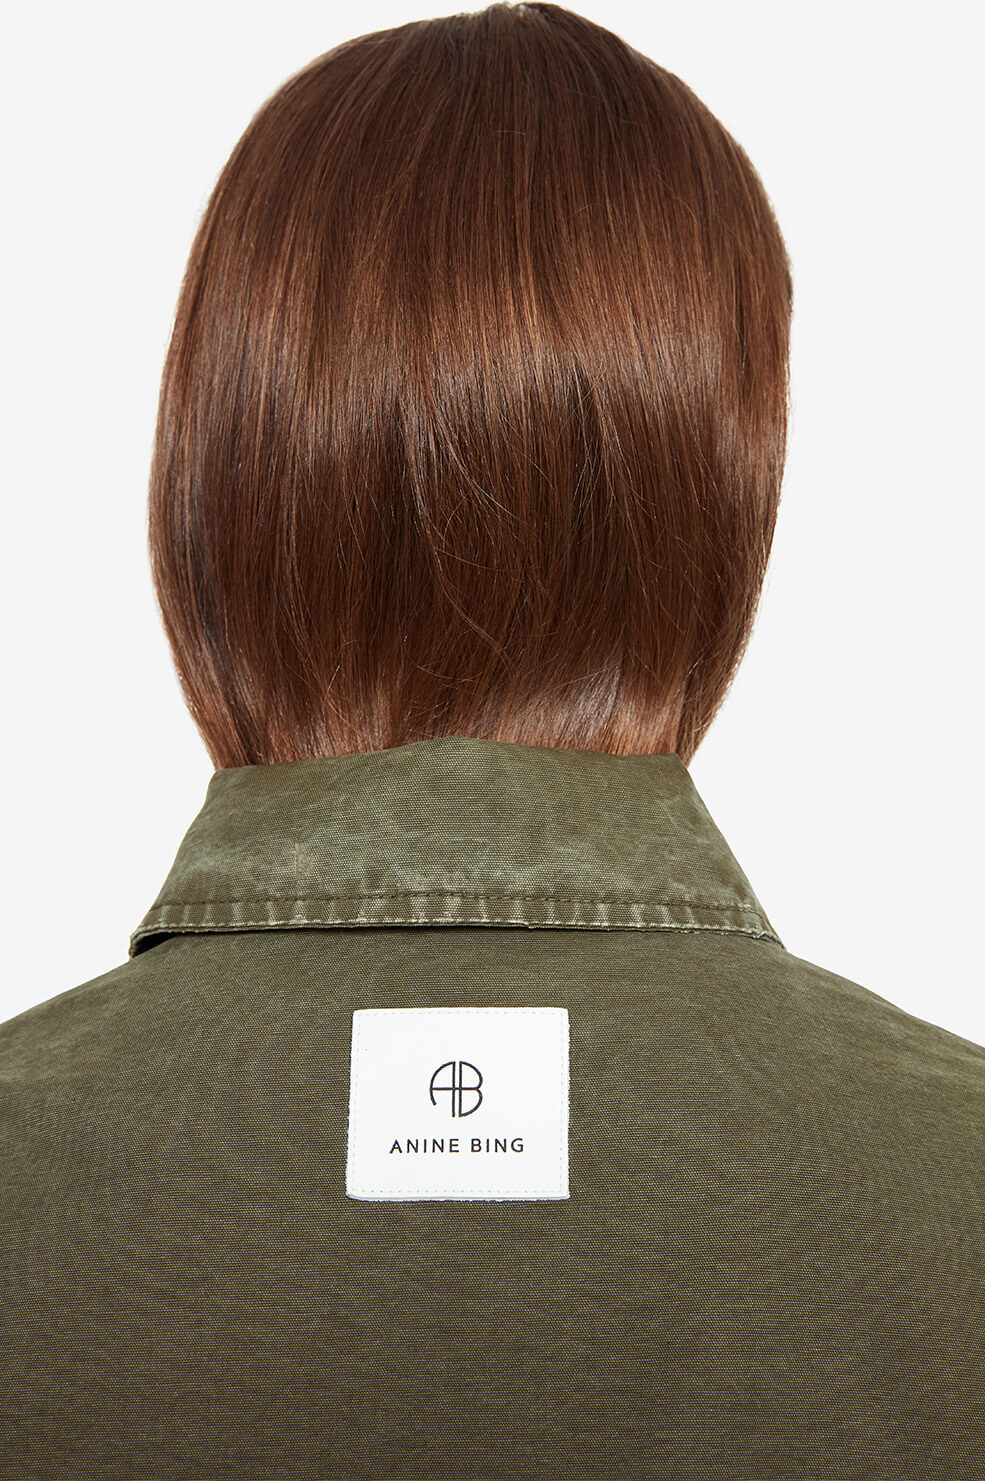 ANINE BING Joey Jacket - Green